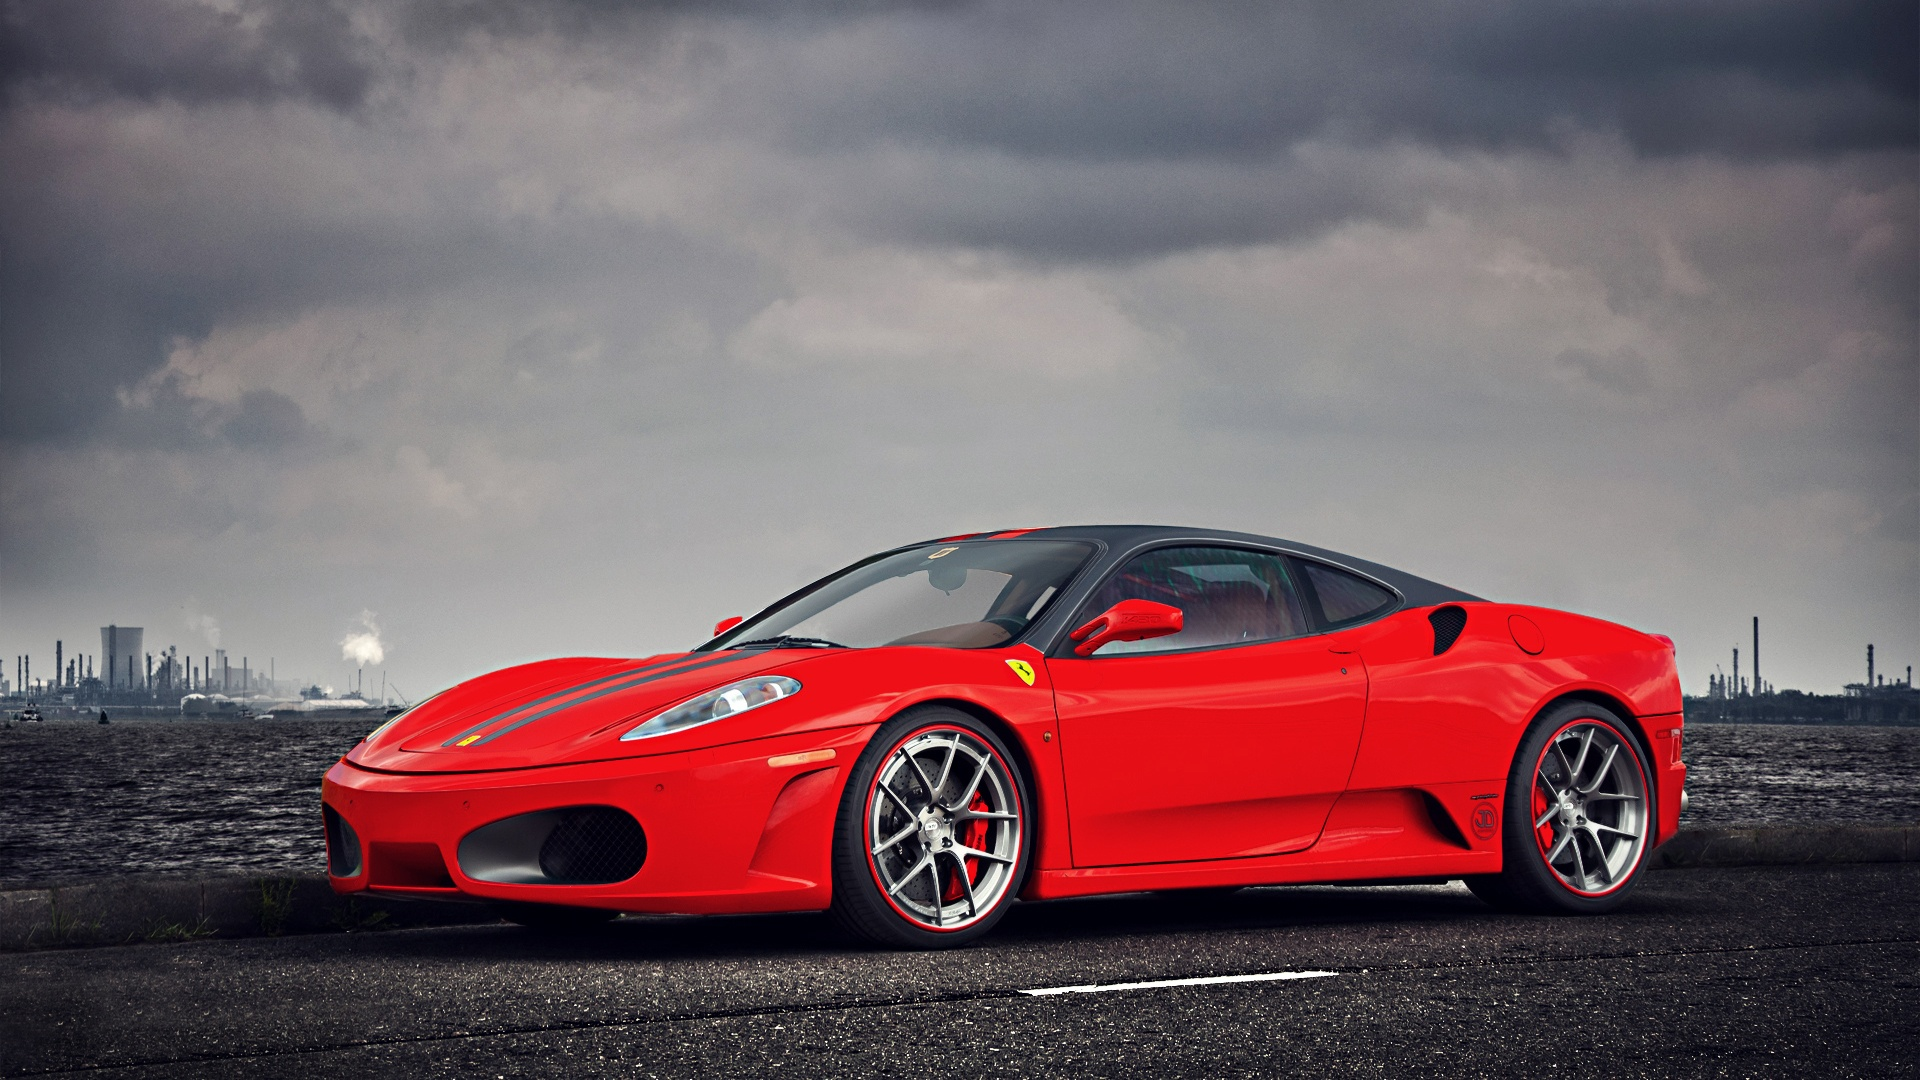 HD wallpapers ferrari car wallpaper in hd